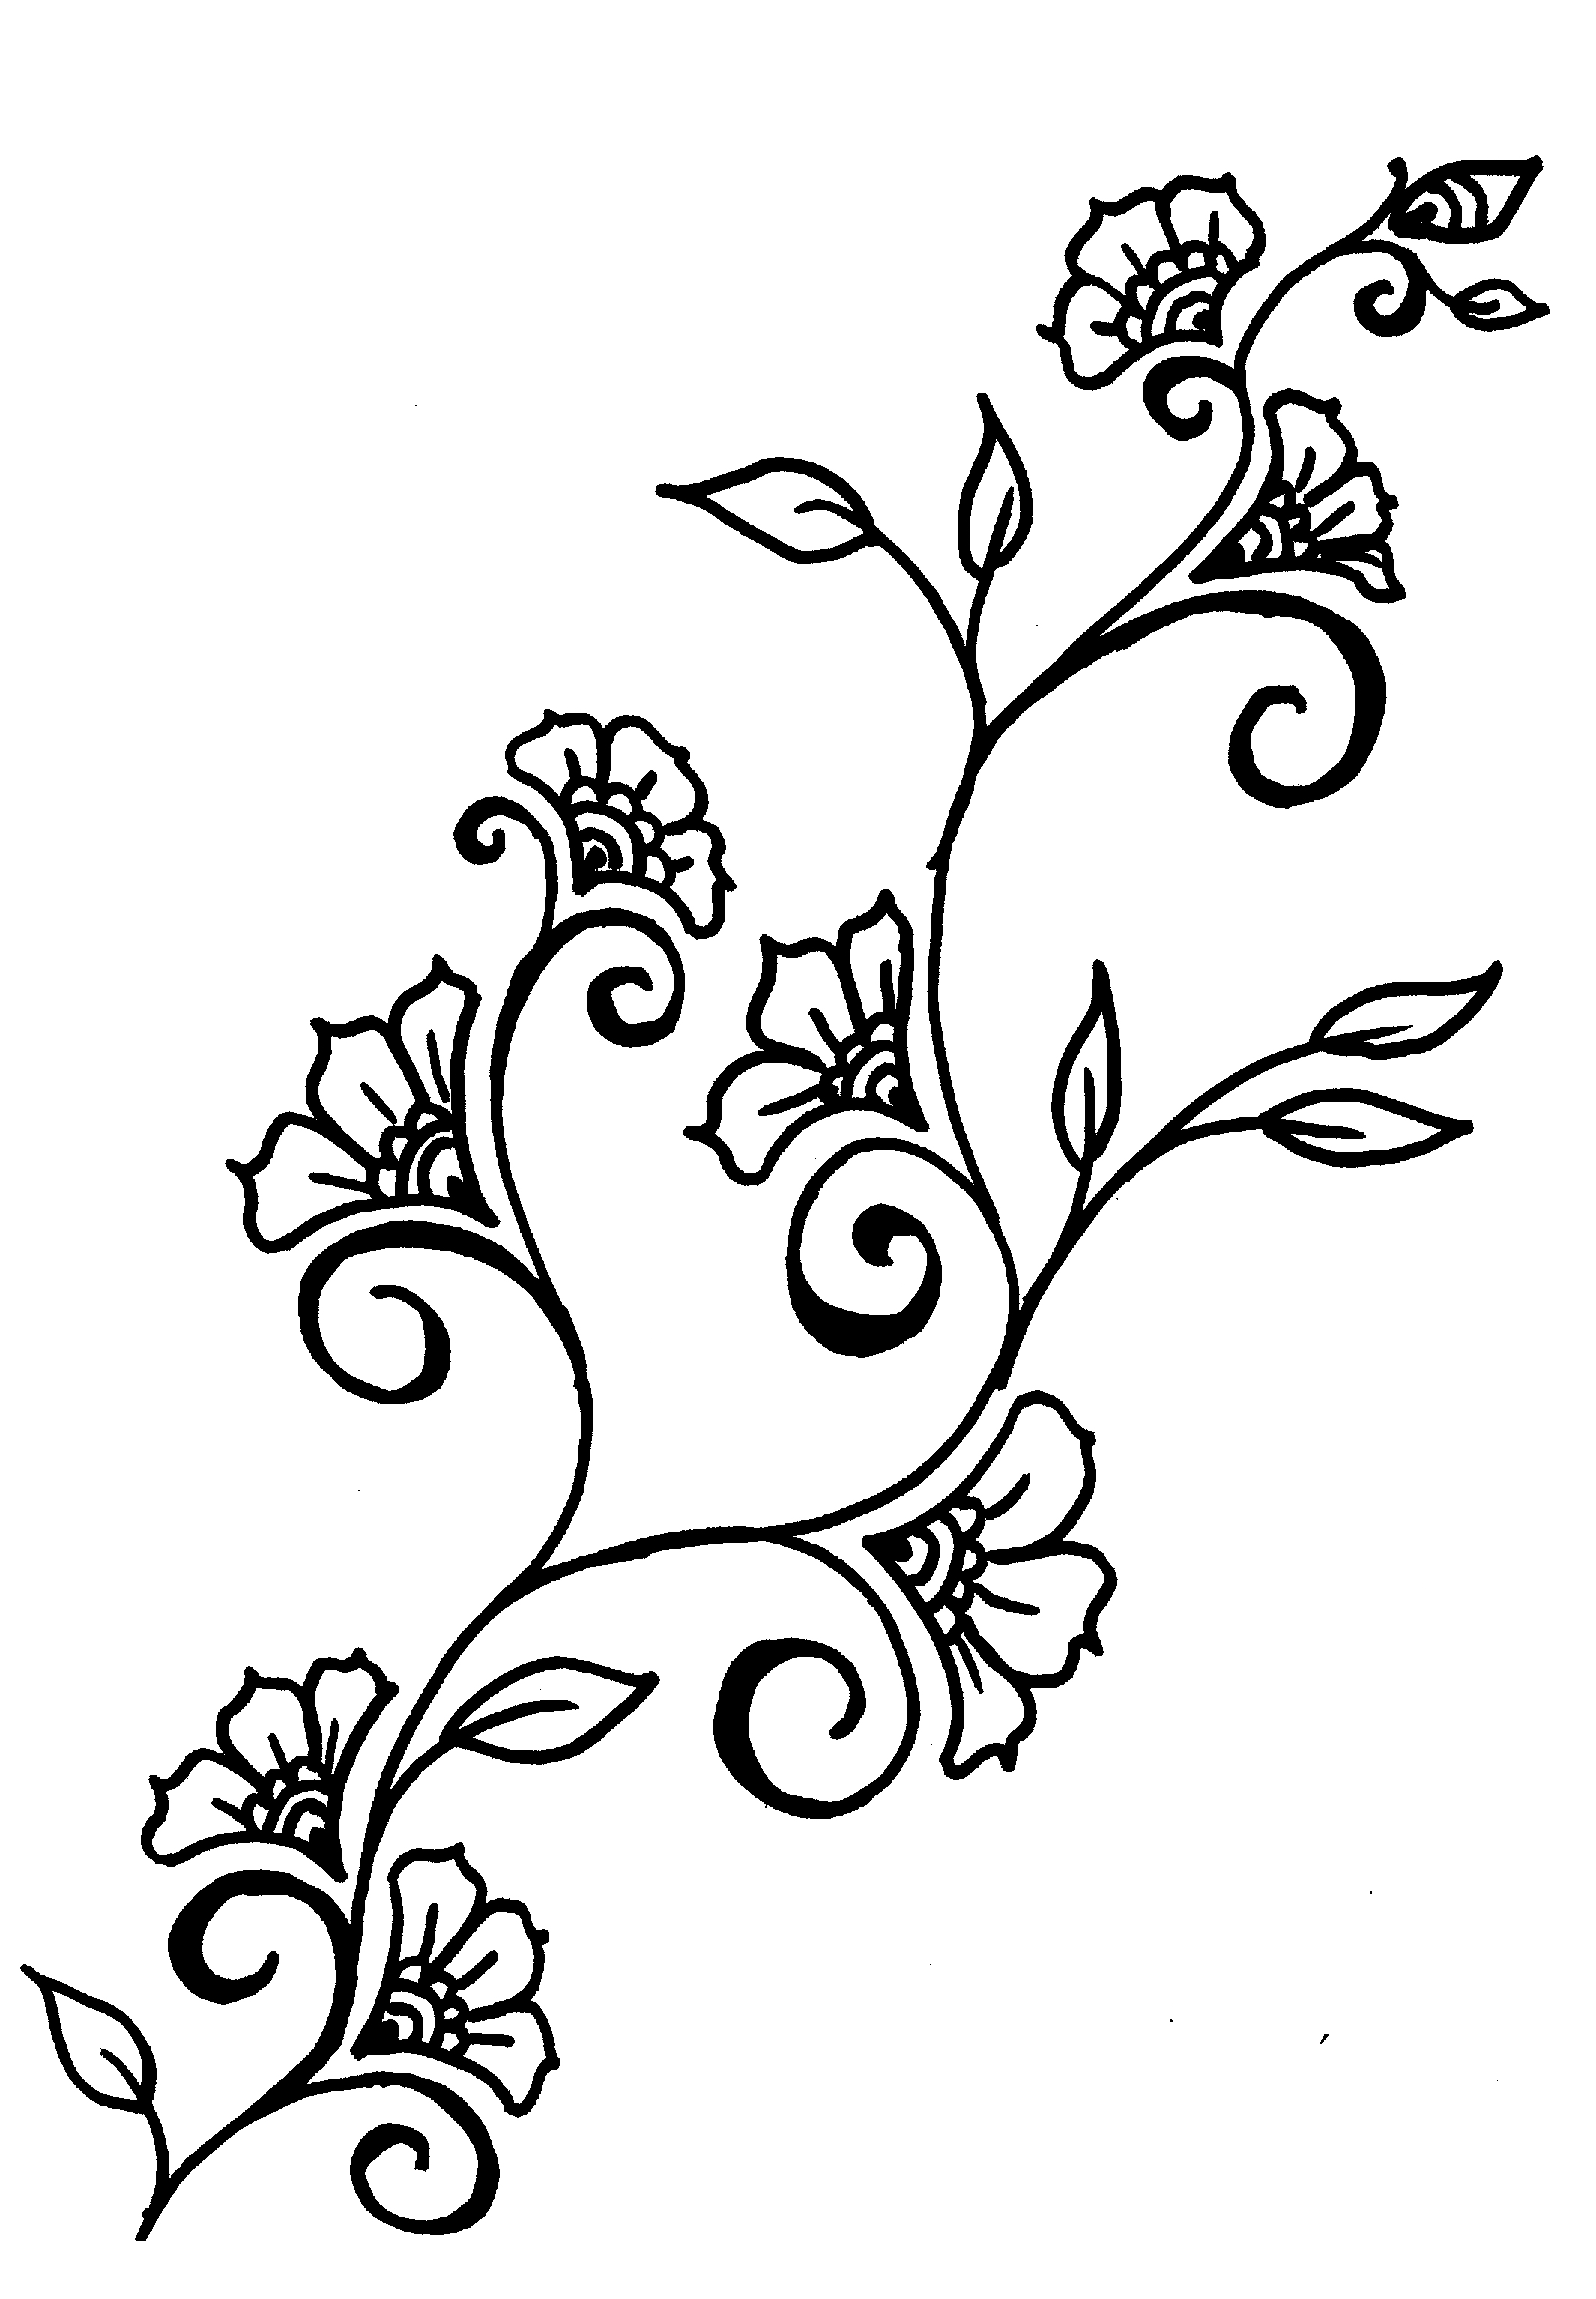 Vine Designs Art : Vine tattoos designs ideas and meaning for you